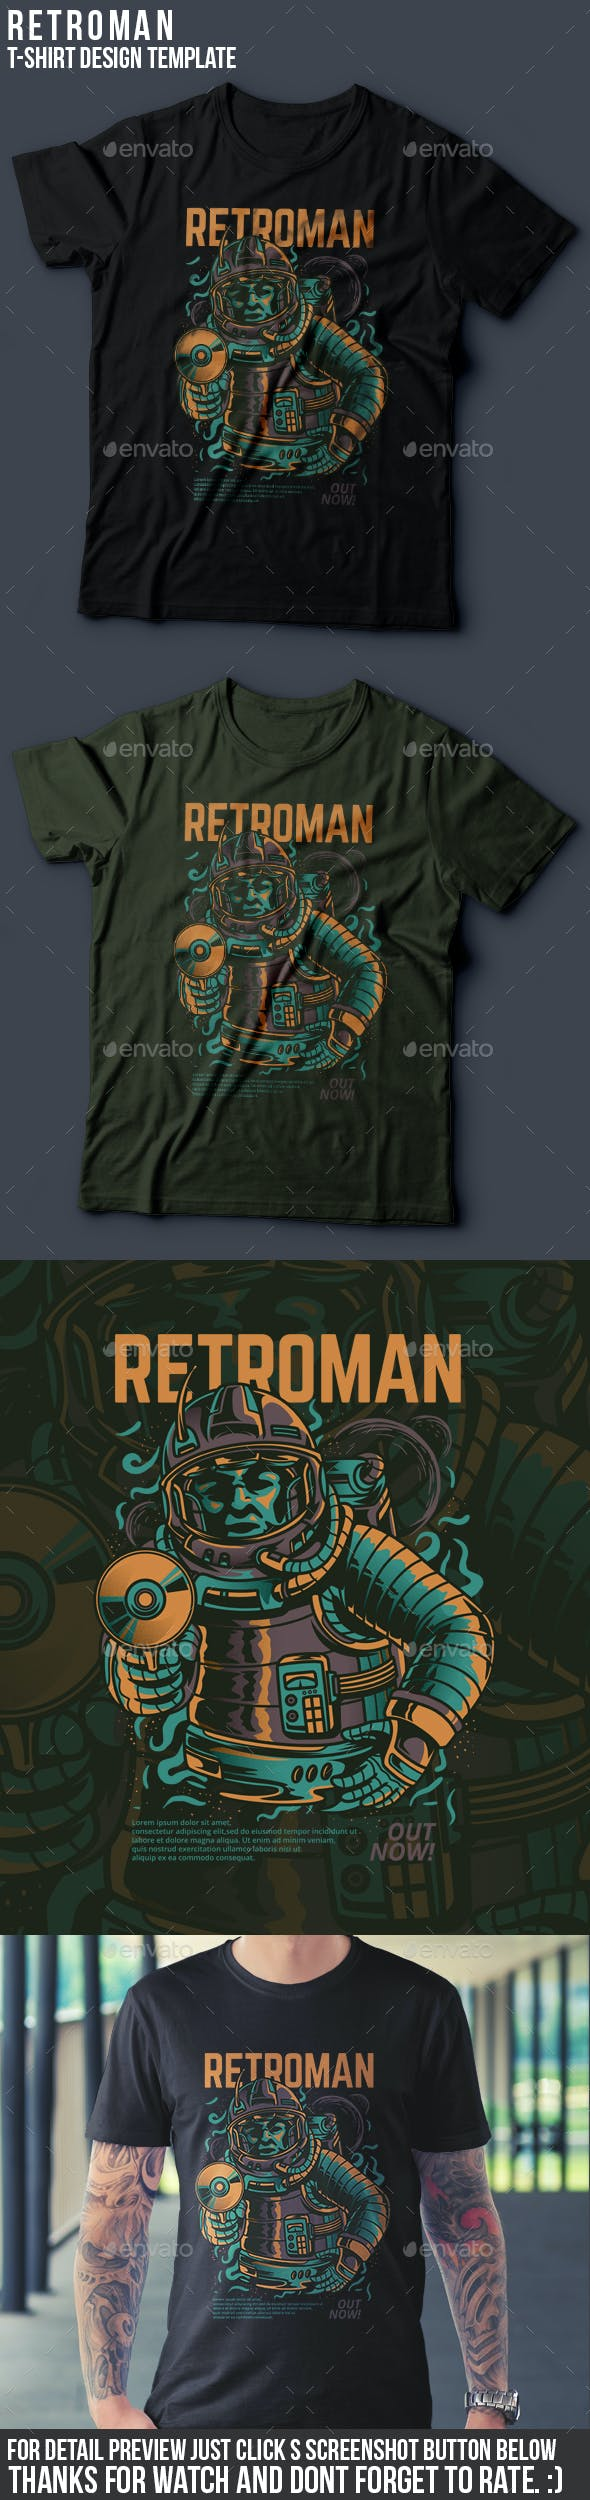 Retroman T-Shirt Design